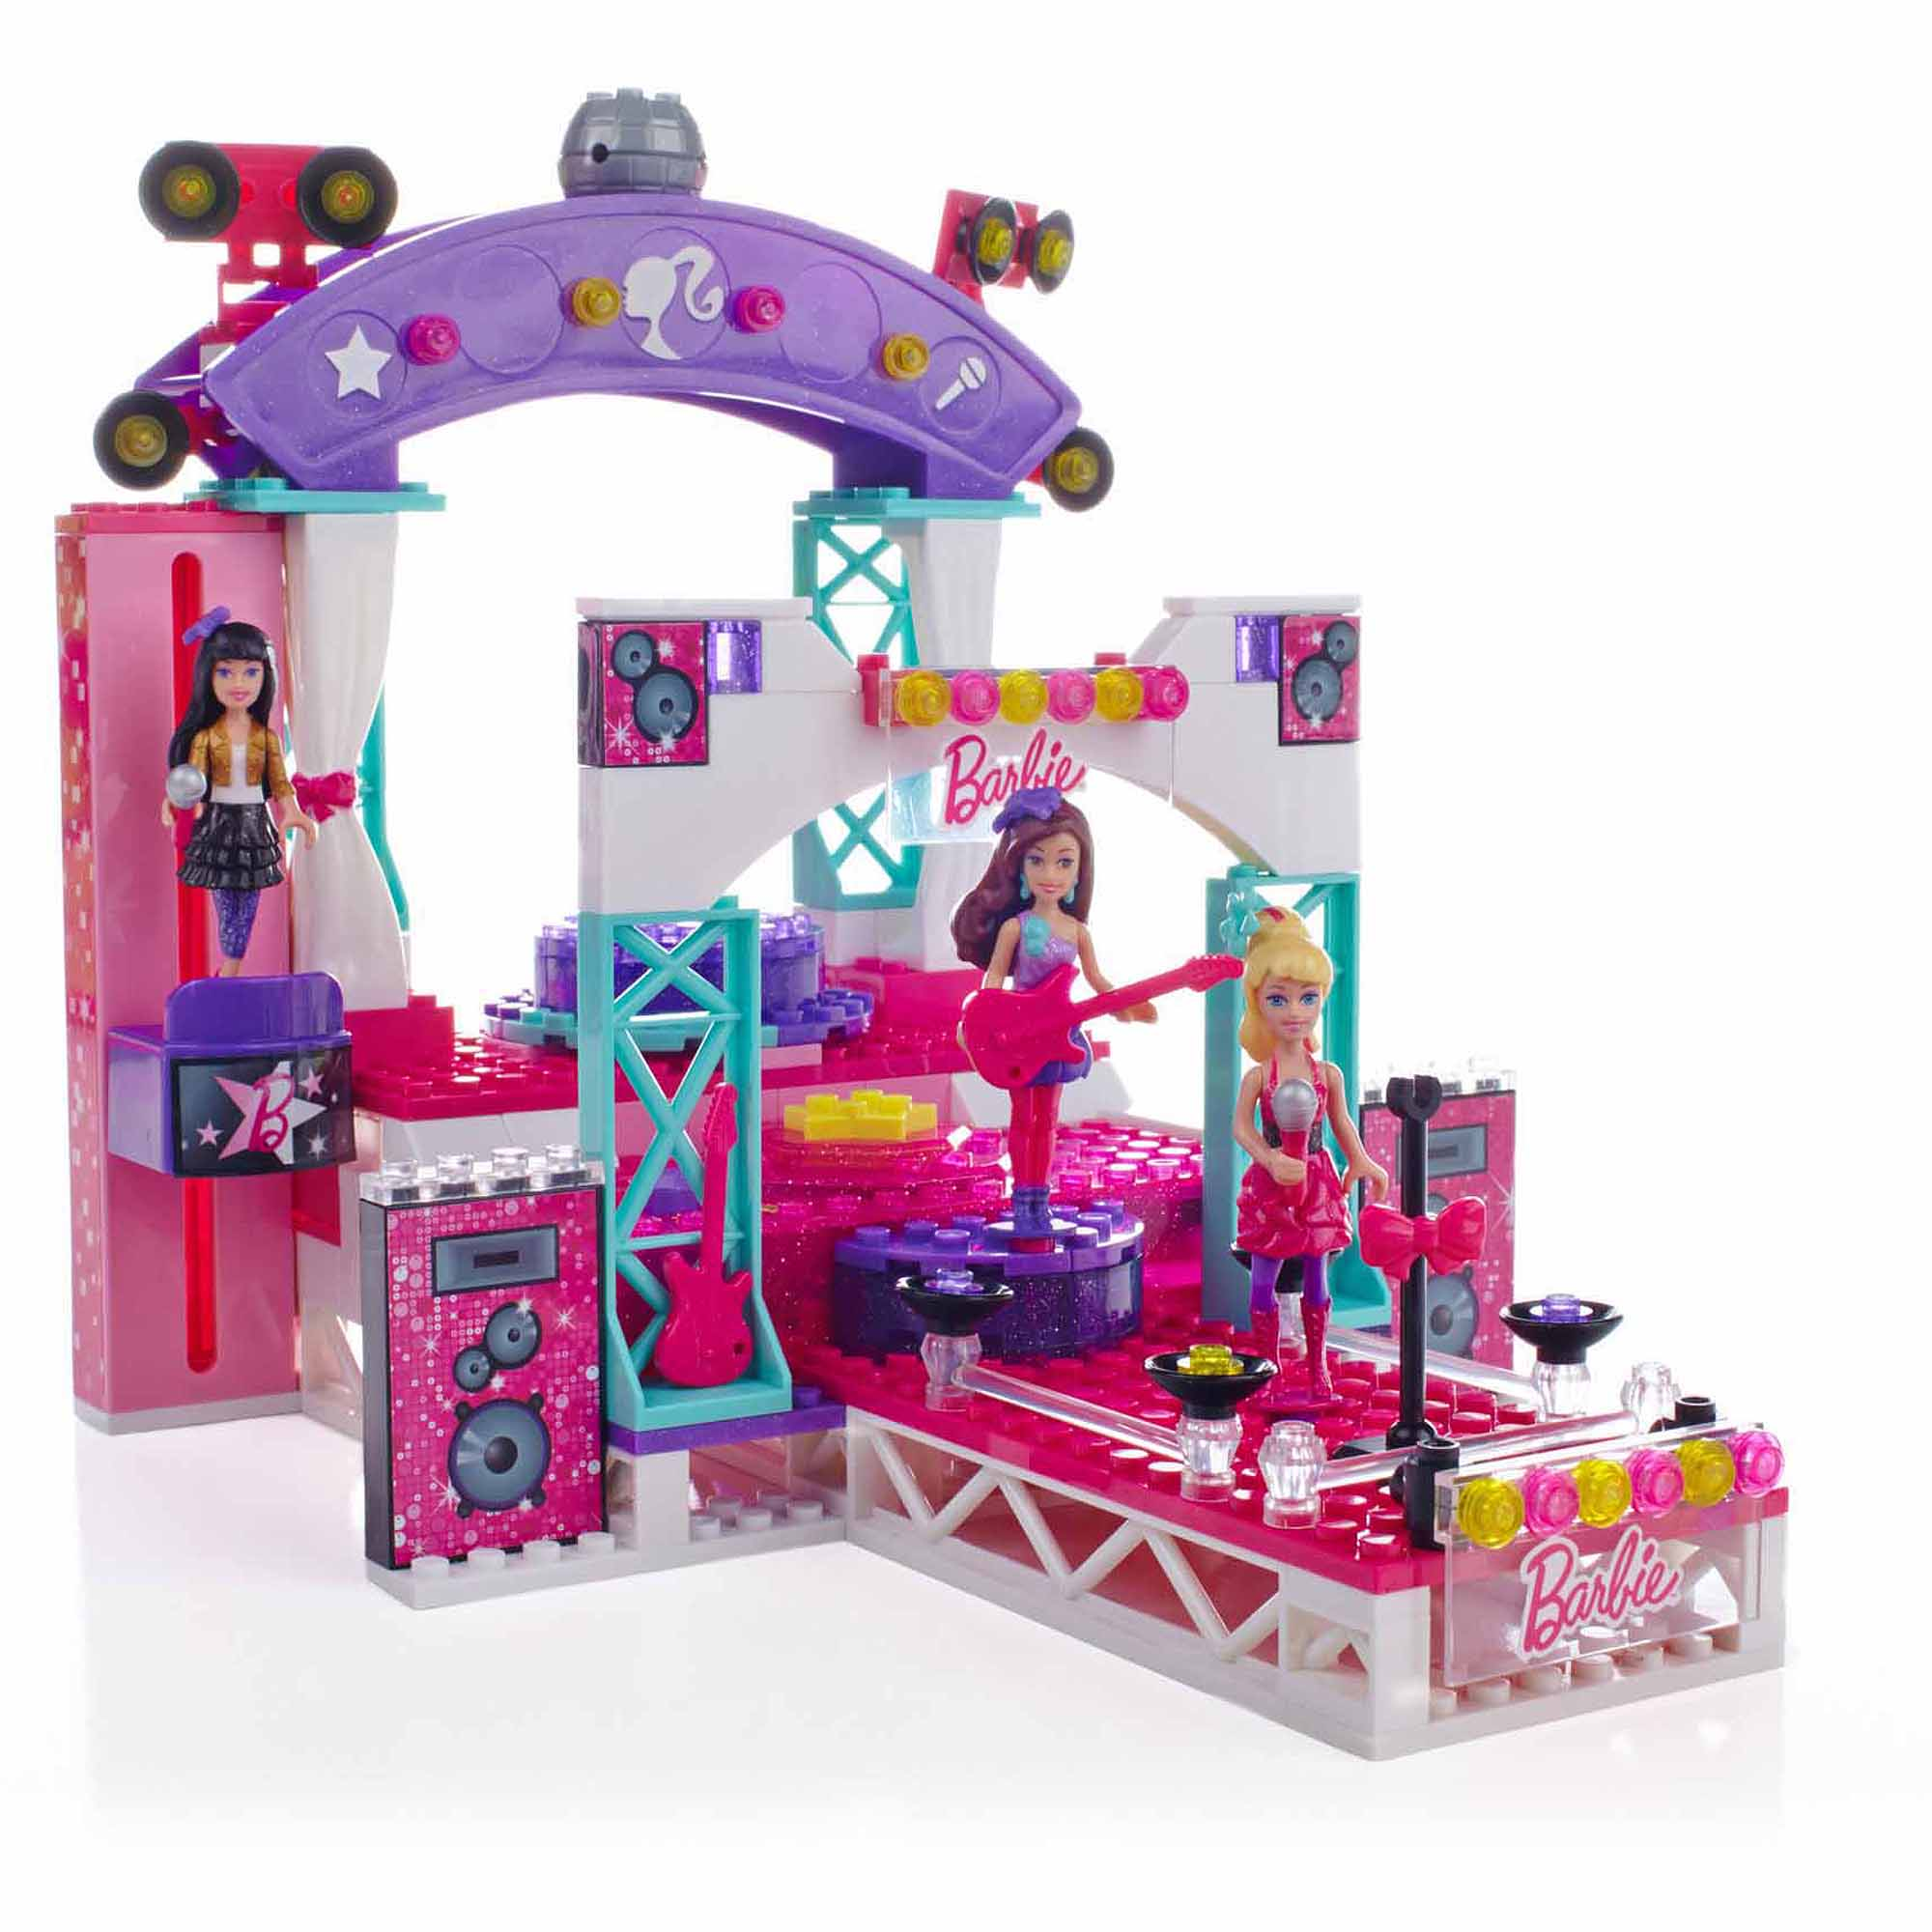 Mega Bloks Barbie Build 'n Play Super Star Stage Play Set